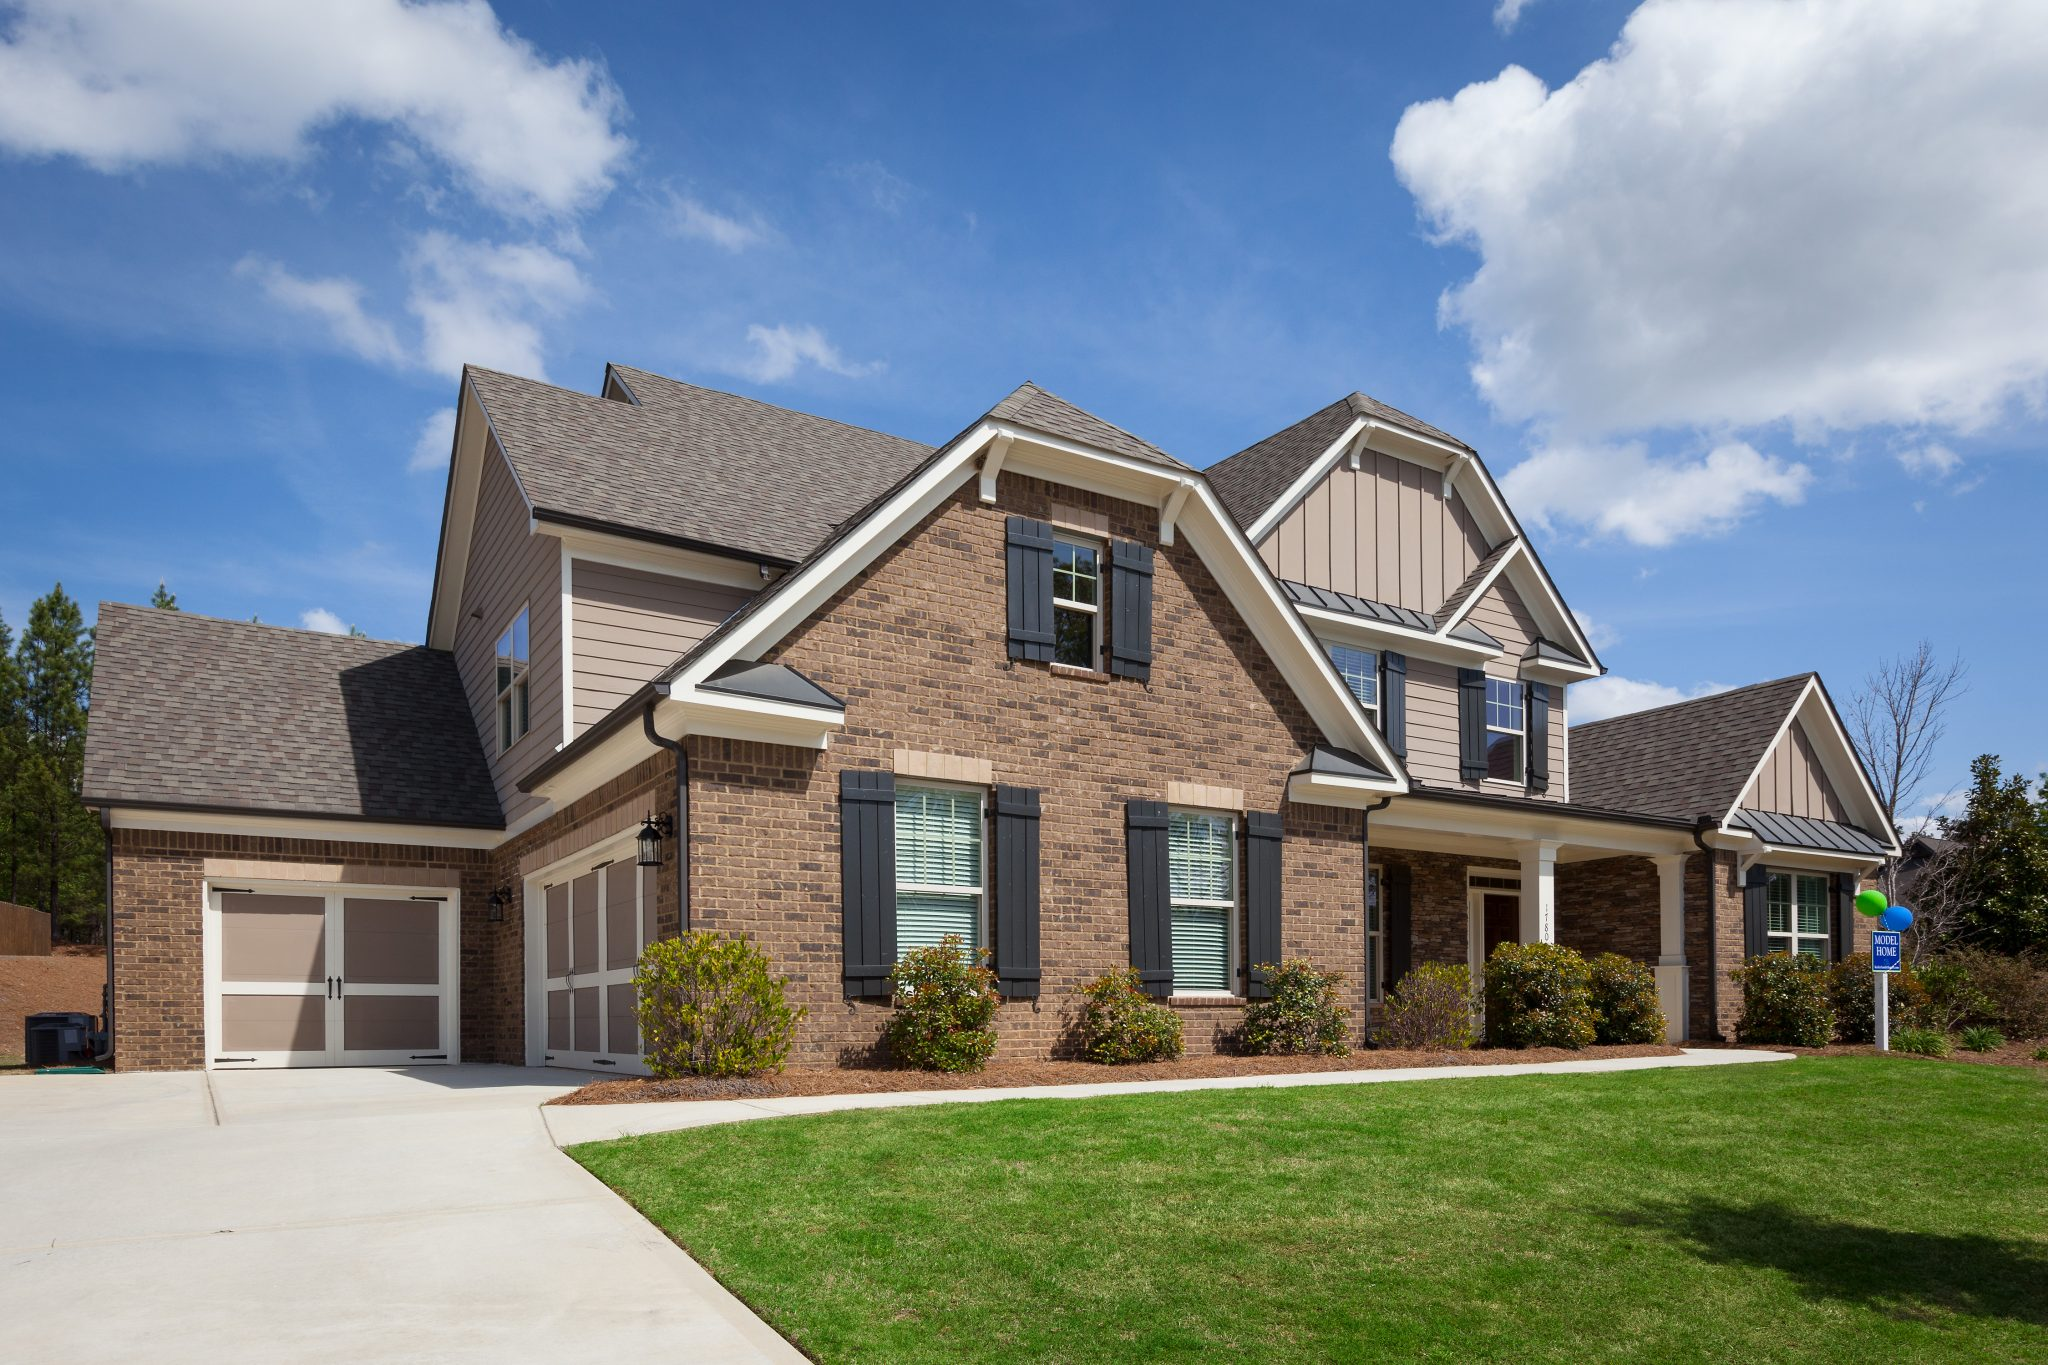 RiverSprings has new homes available now in Gwinnett